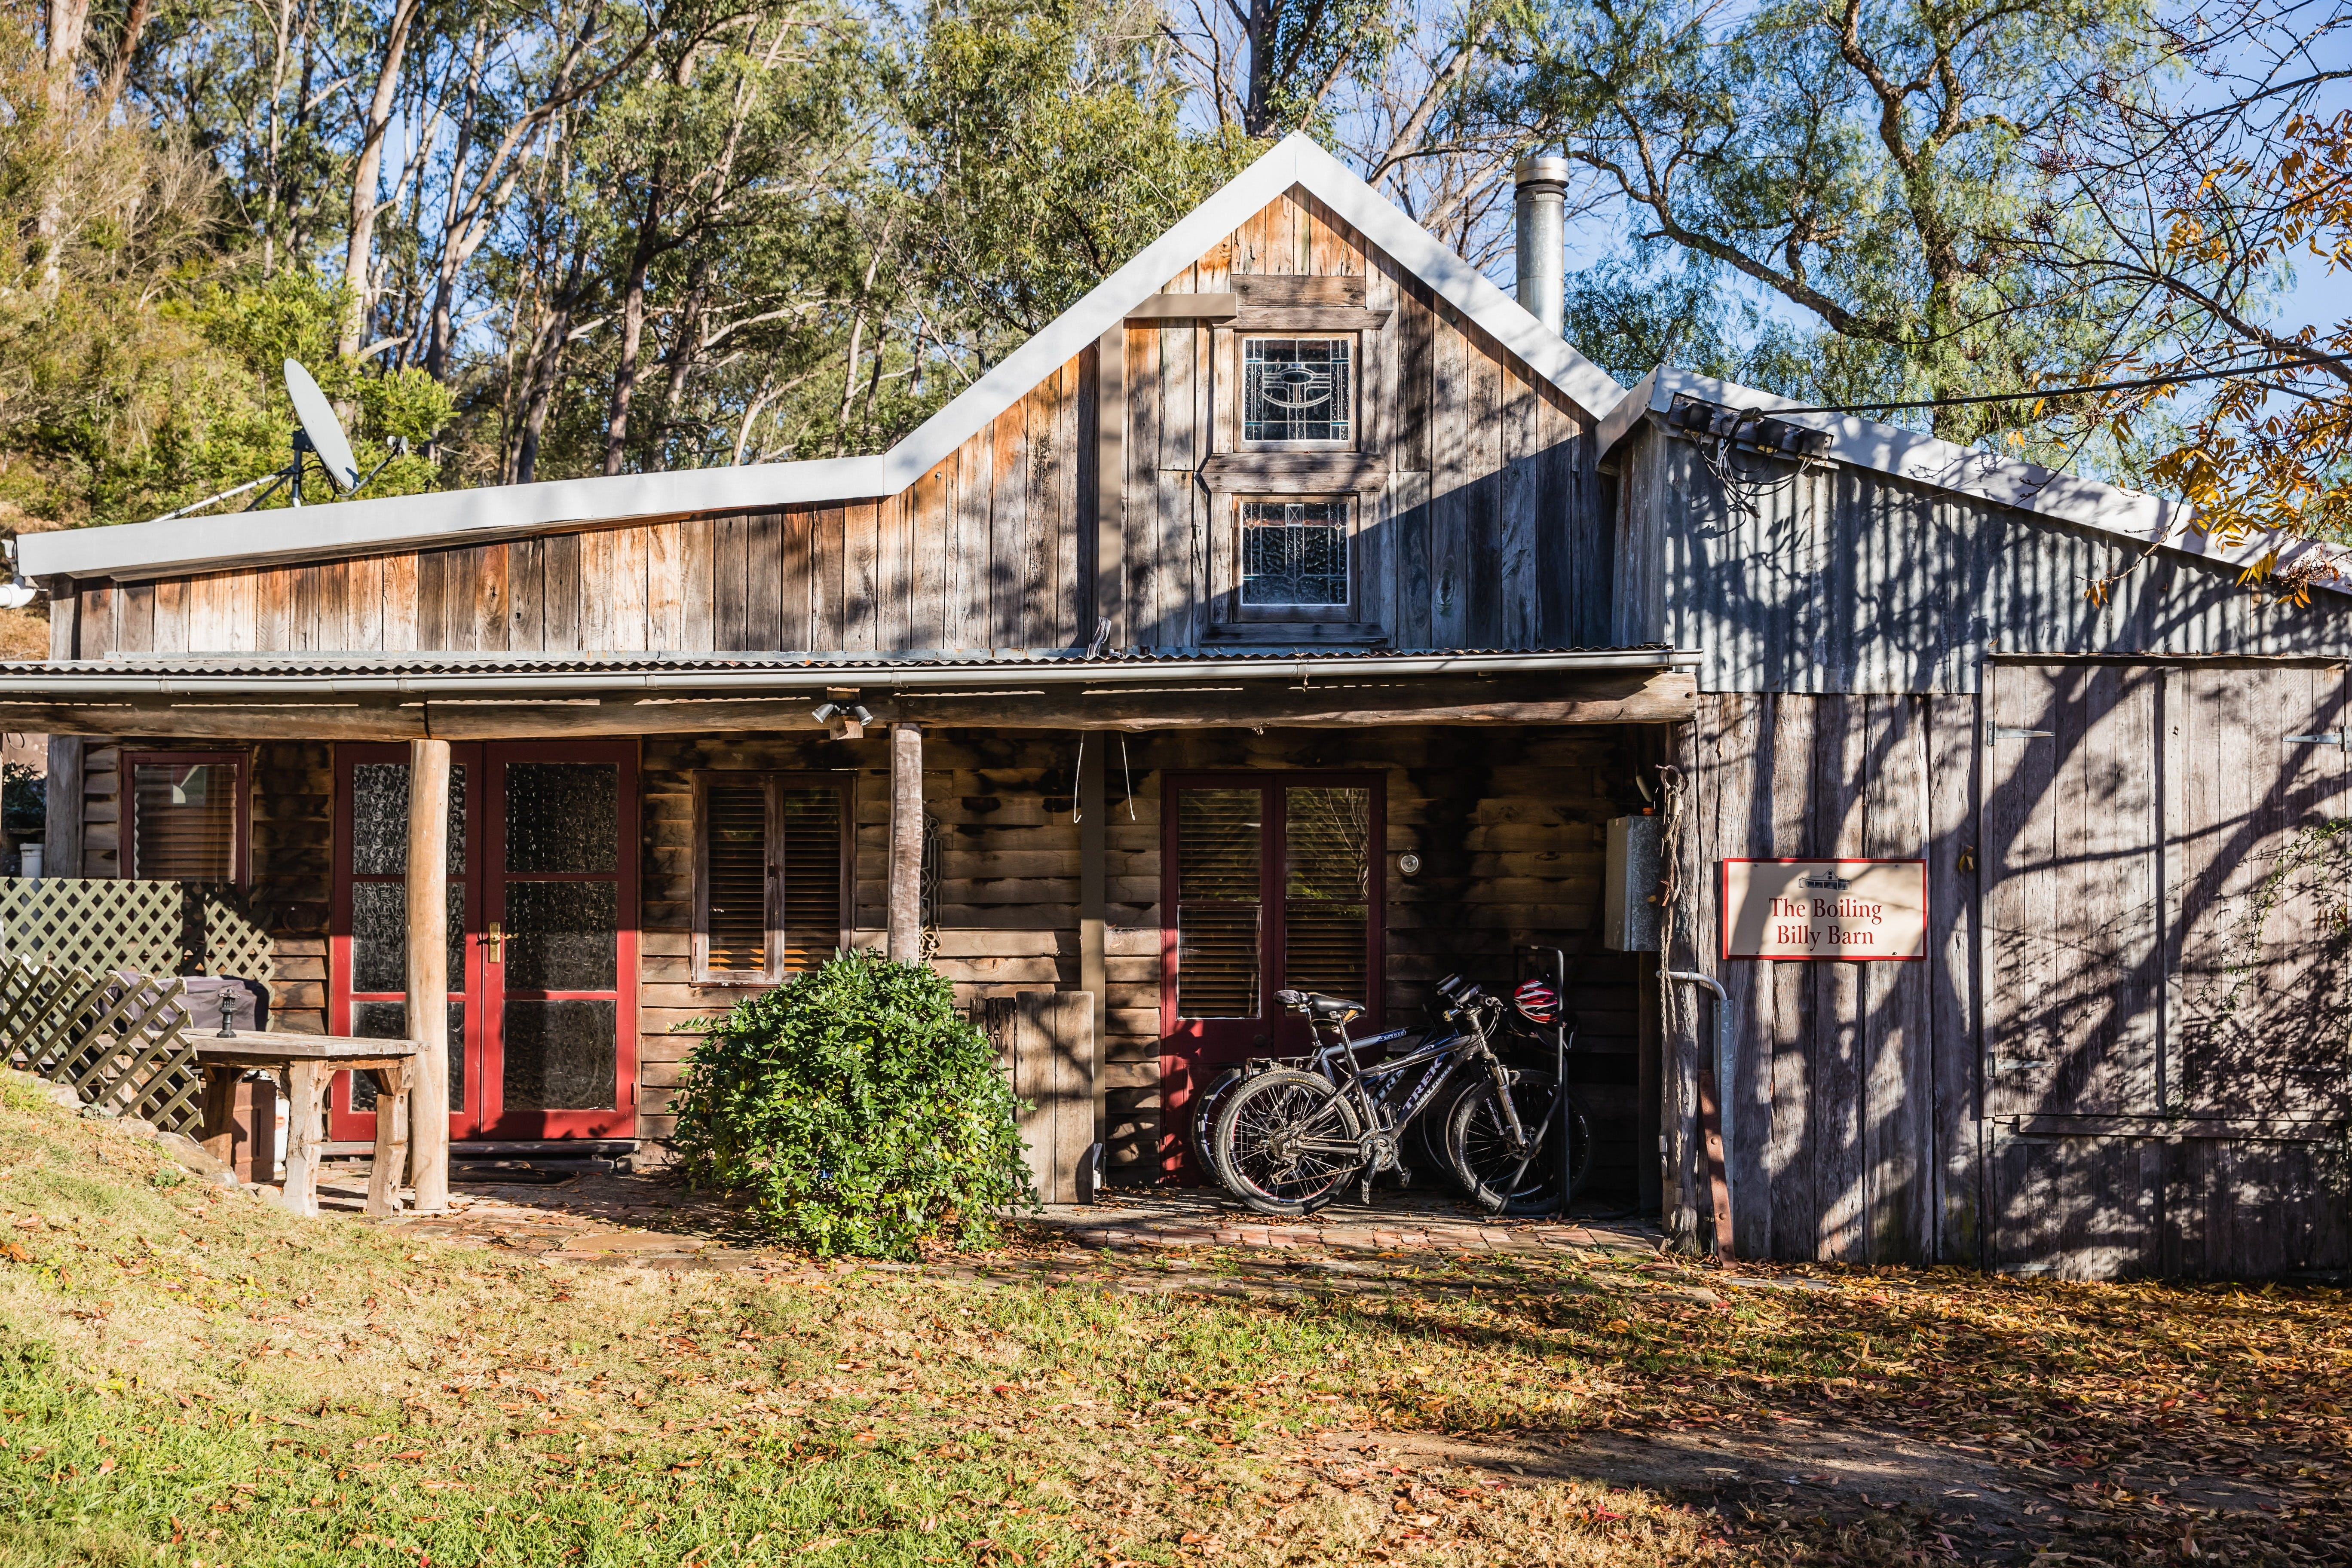 The Boiling Billy Barn - Nambucca Heads Accommodation